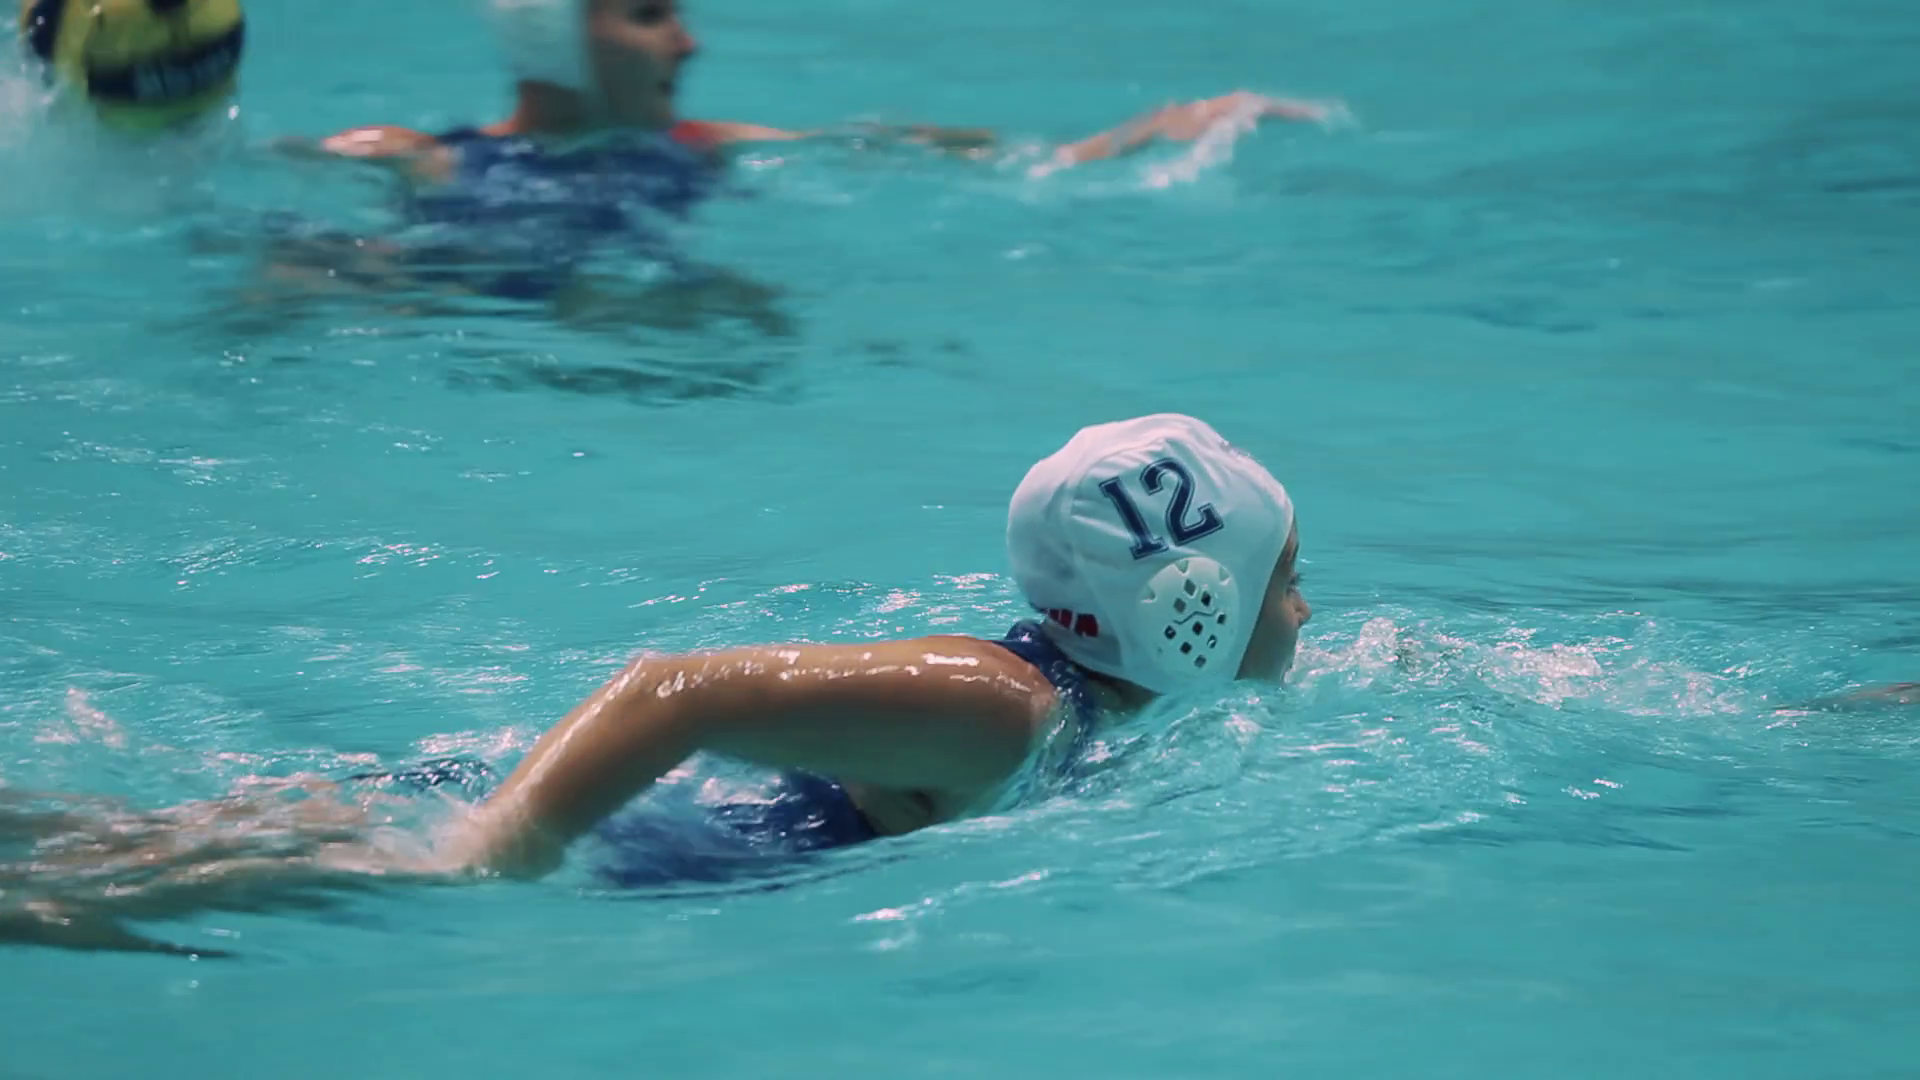 Water Polo Png Hd - Female Water Polo Players In Blue And White Swimwear Energetically Swimming During Match In Pool With Lot Of Splashes Stock Video Footage   Videoblocks, Transparent background PNG HD thumbnail